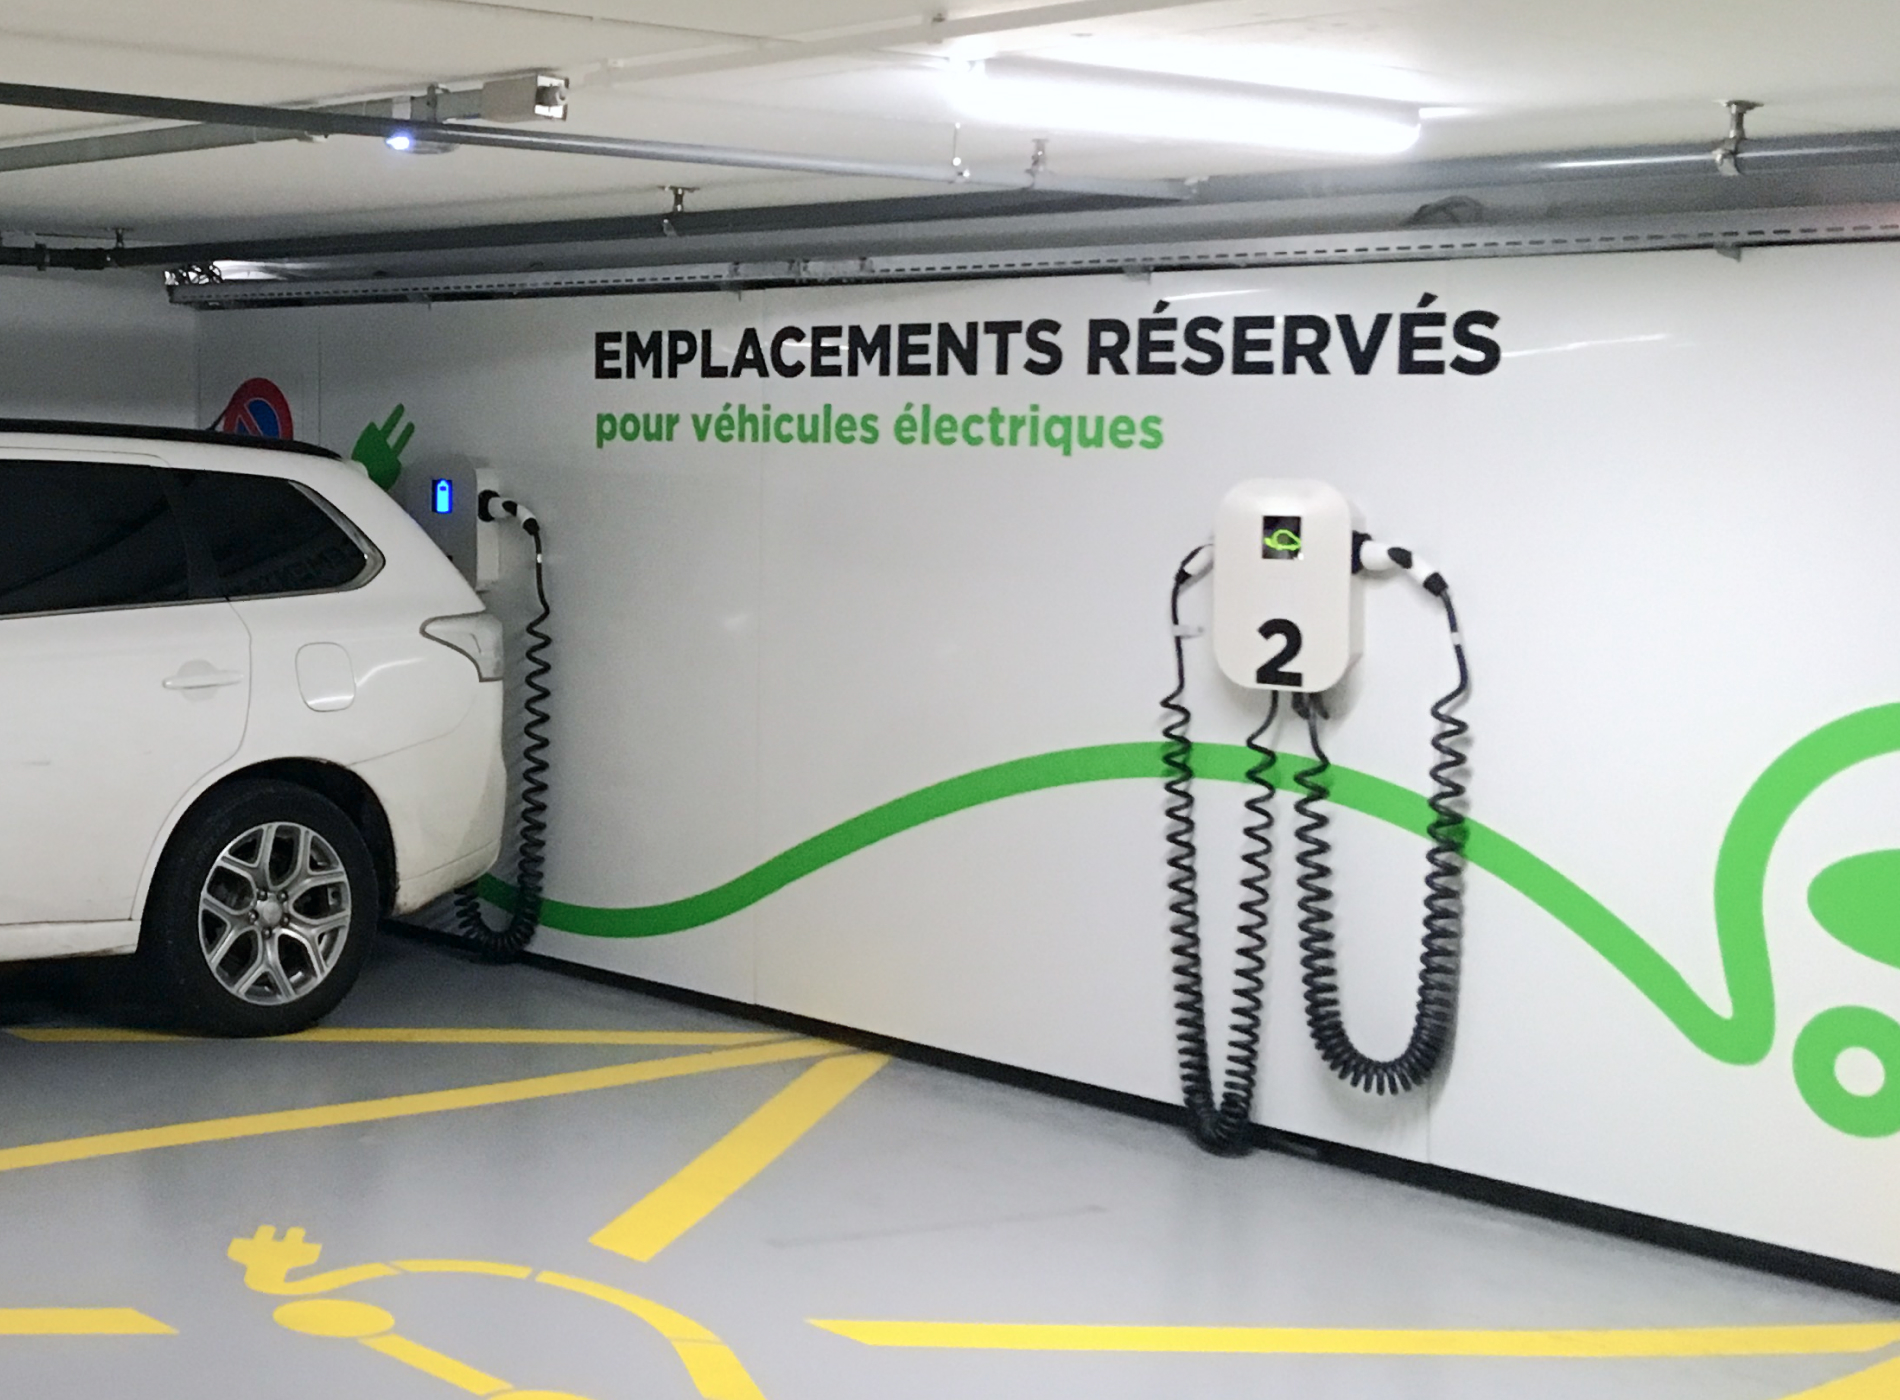 Underground parking with an electric vehicle charging